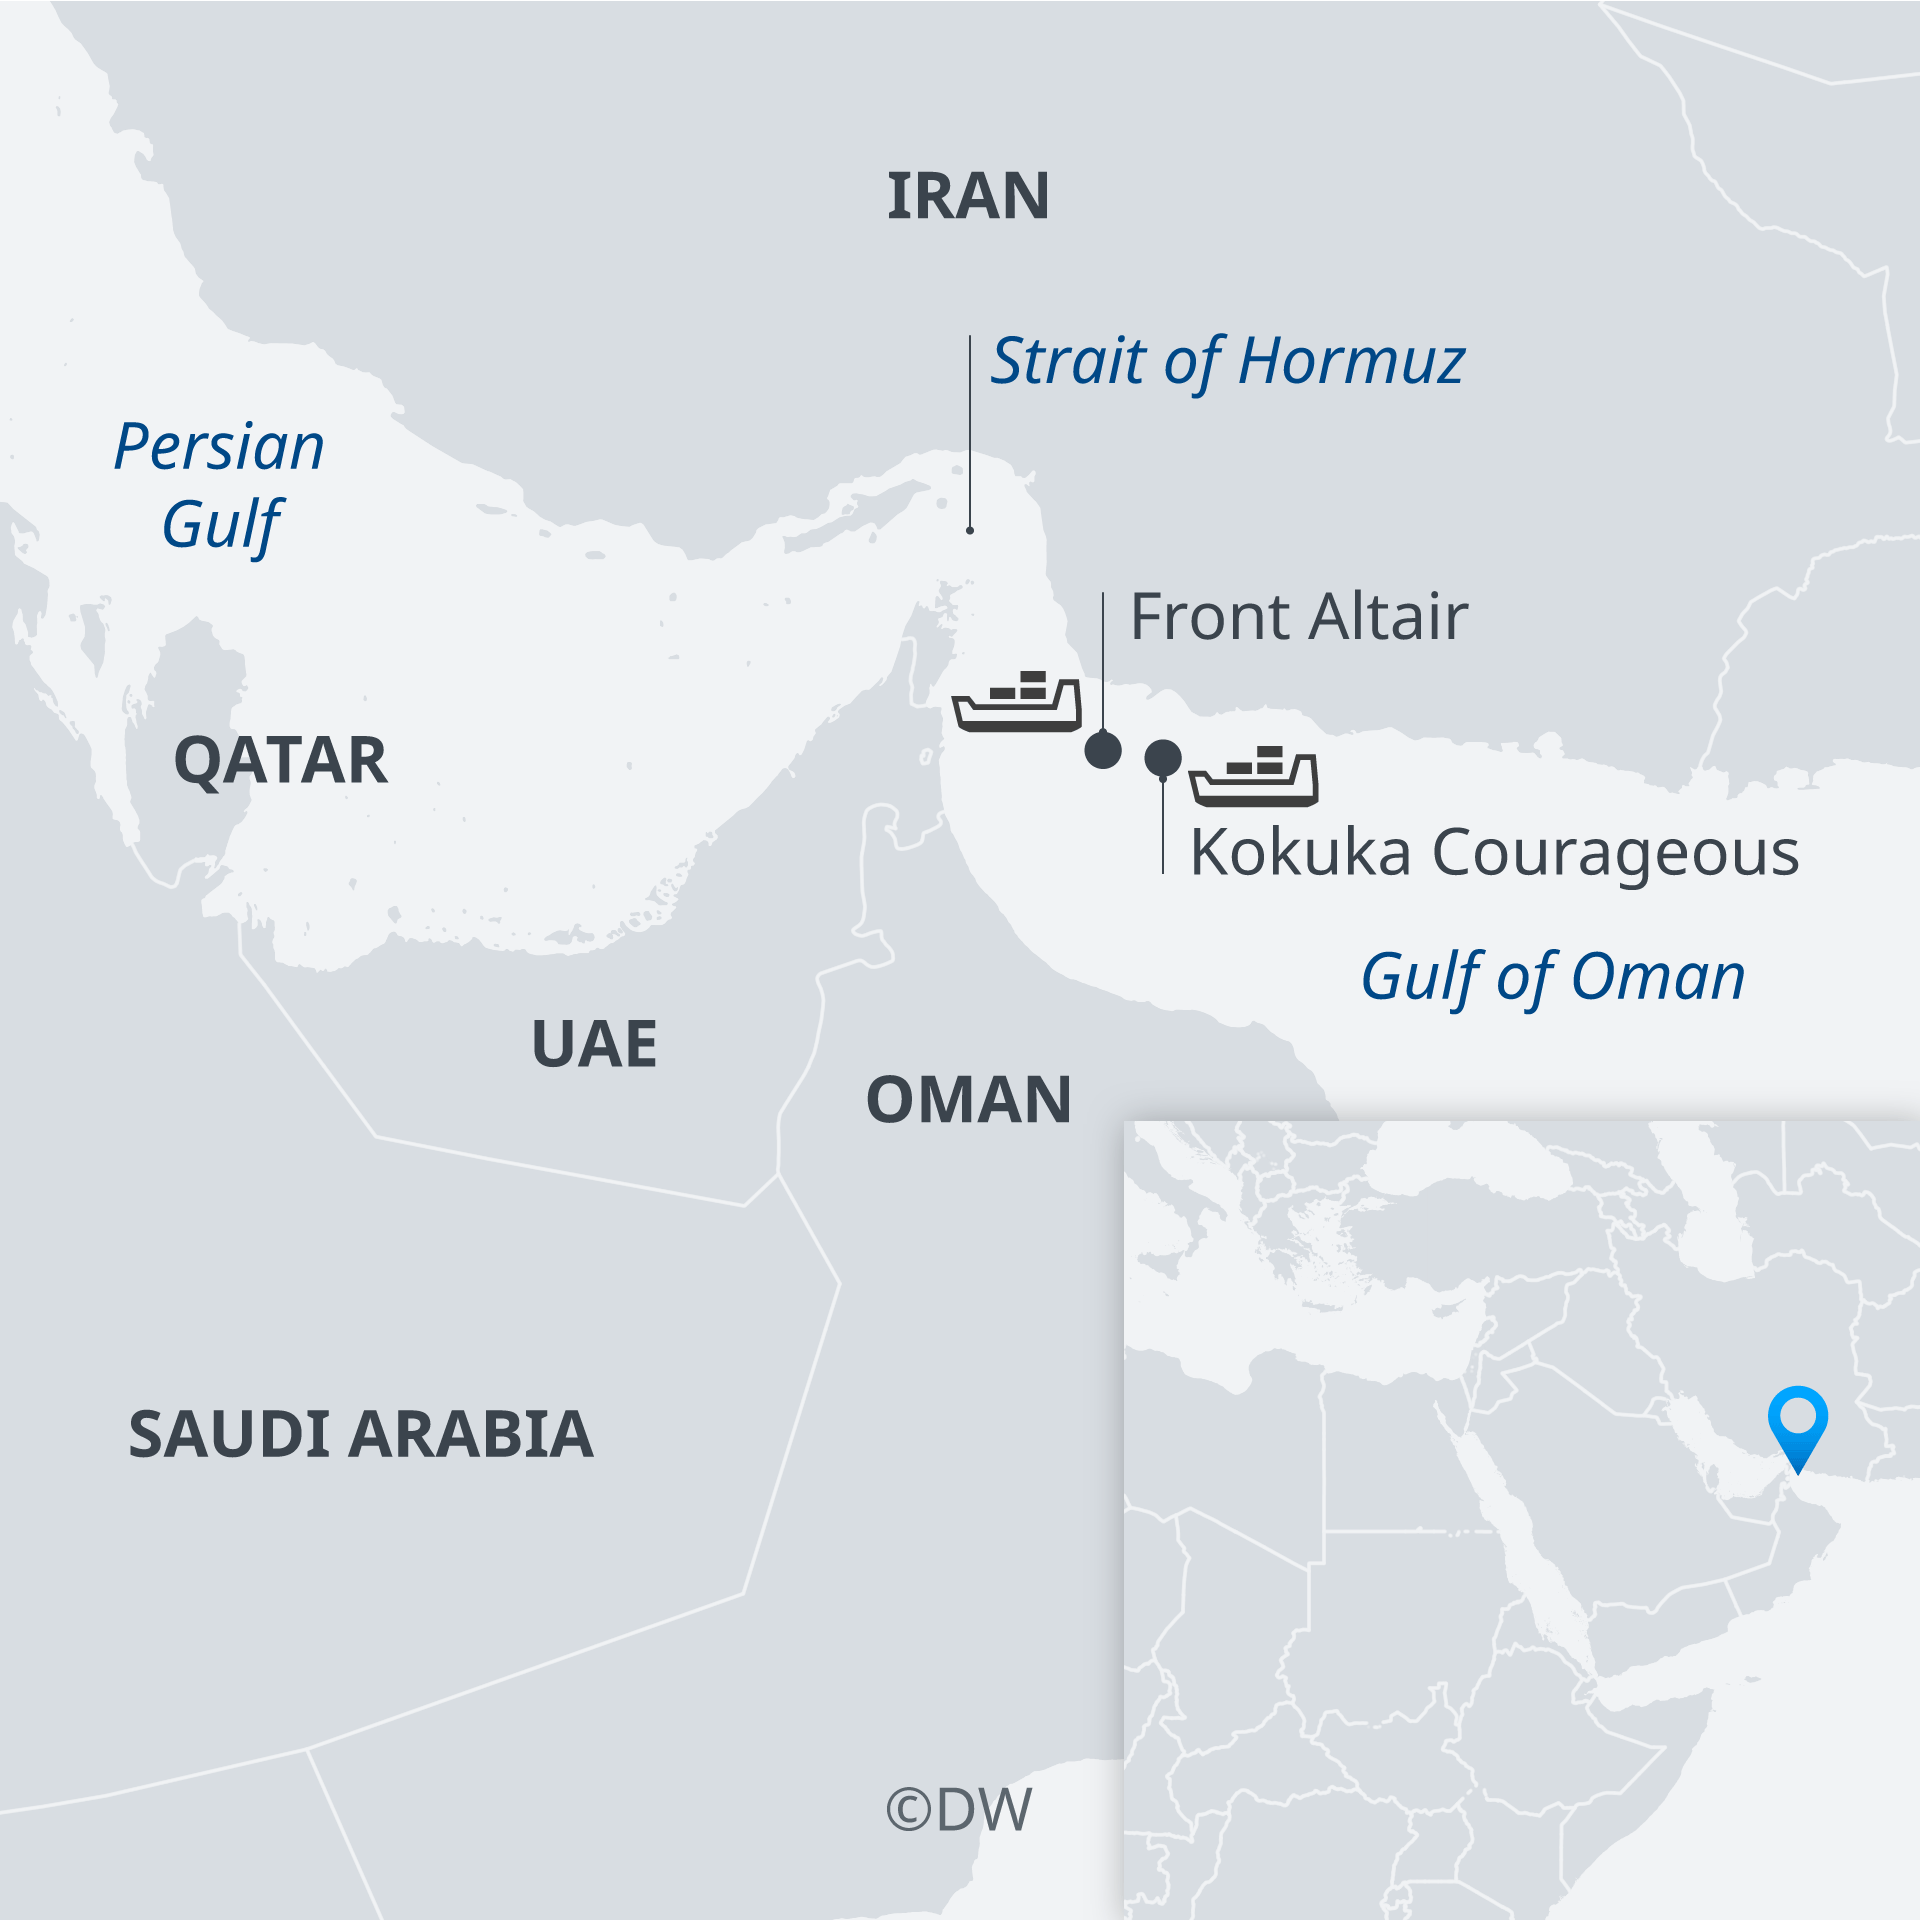 Map of the Persian Gulf and Gulf of Oman